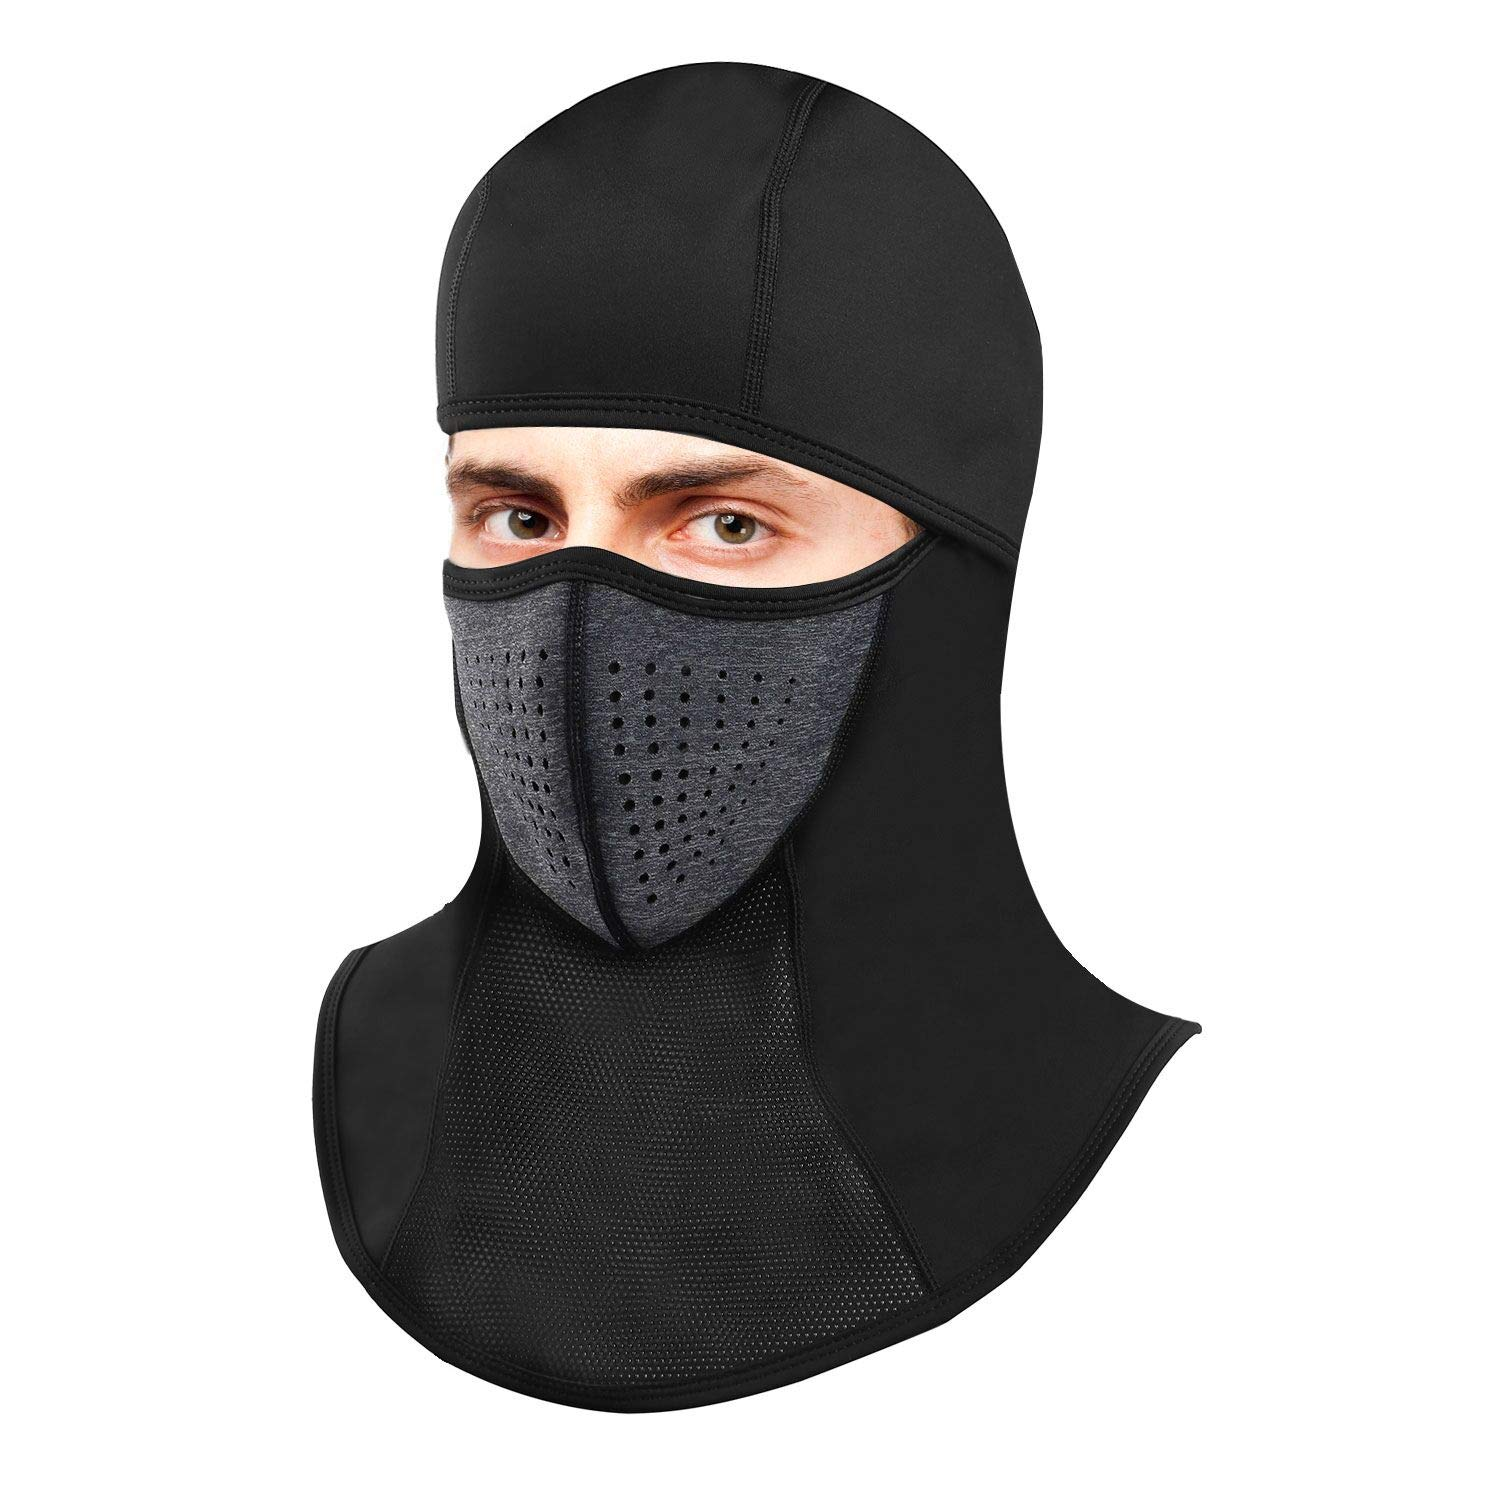 Omenex Balaclava Ski Masks for Man Women Face Mask Waterproof Windproof  with Size Adjustable Band Highly Breathable Vent Stretch Material for  Winter Cold ... 3177613adc